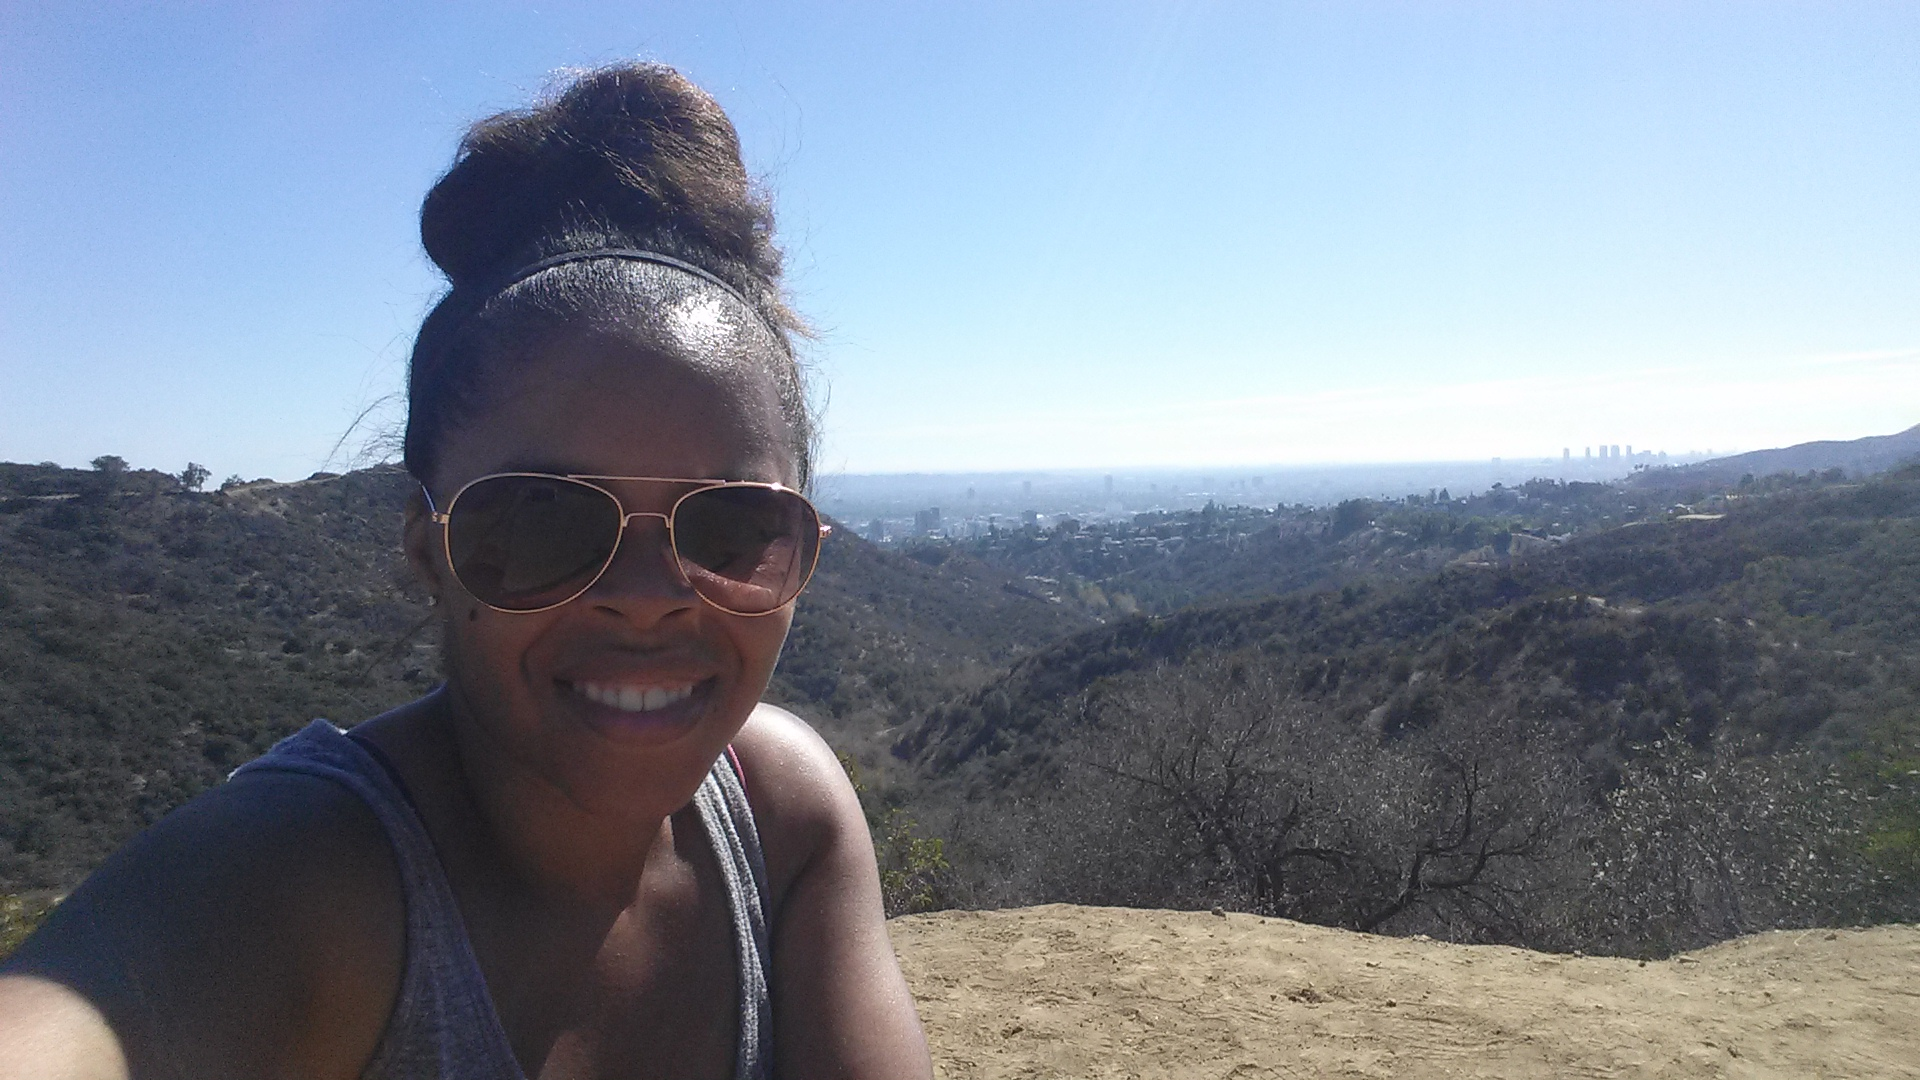 A HOT hike behind the Hollywood sign where I got sunburned. Worth it